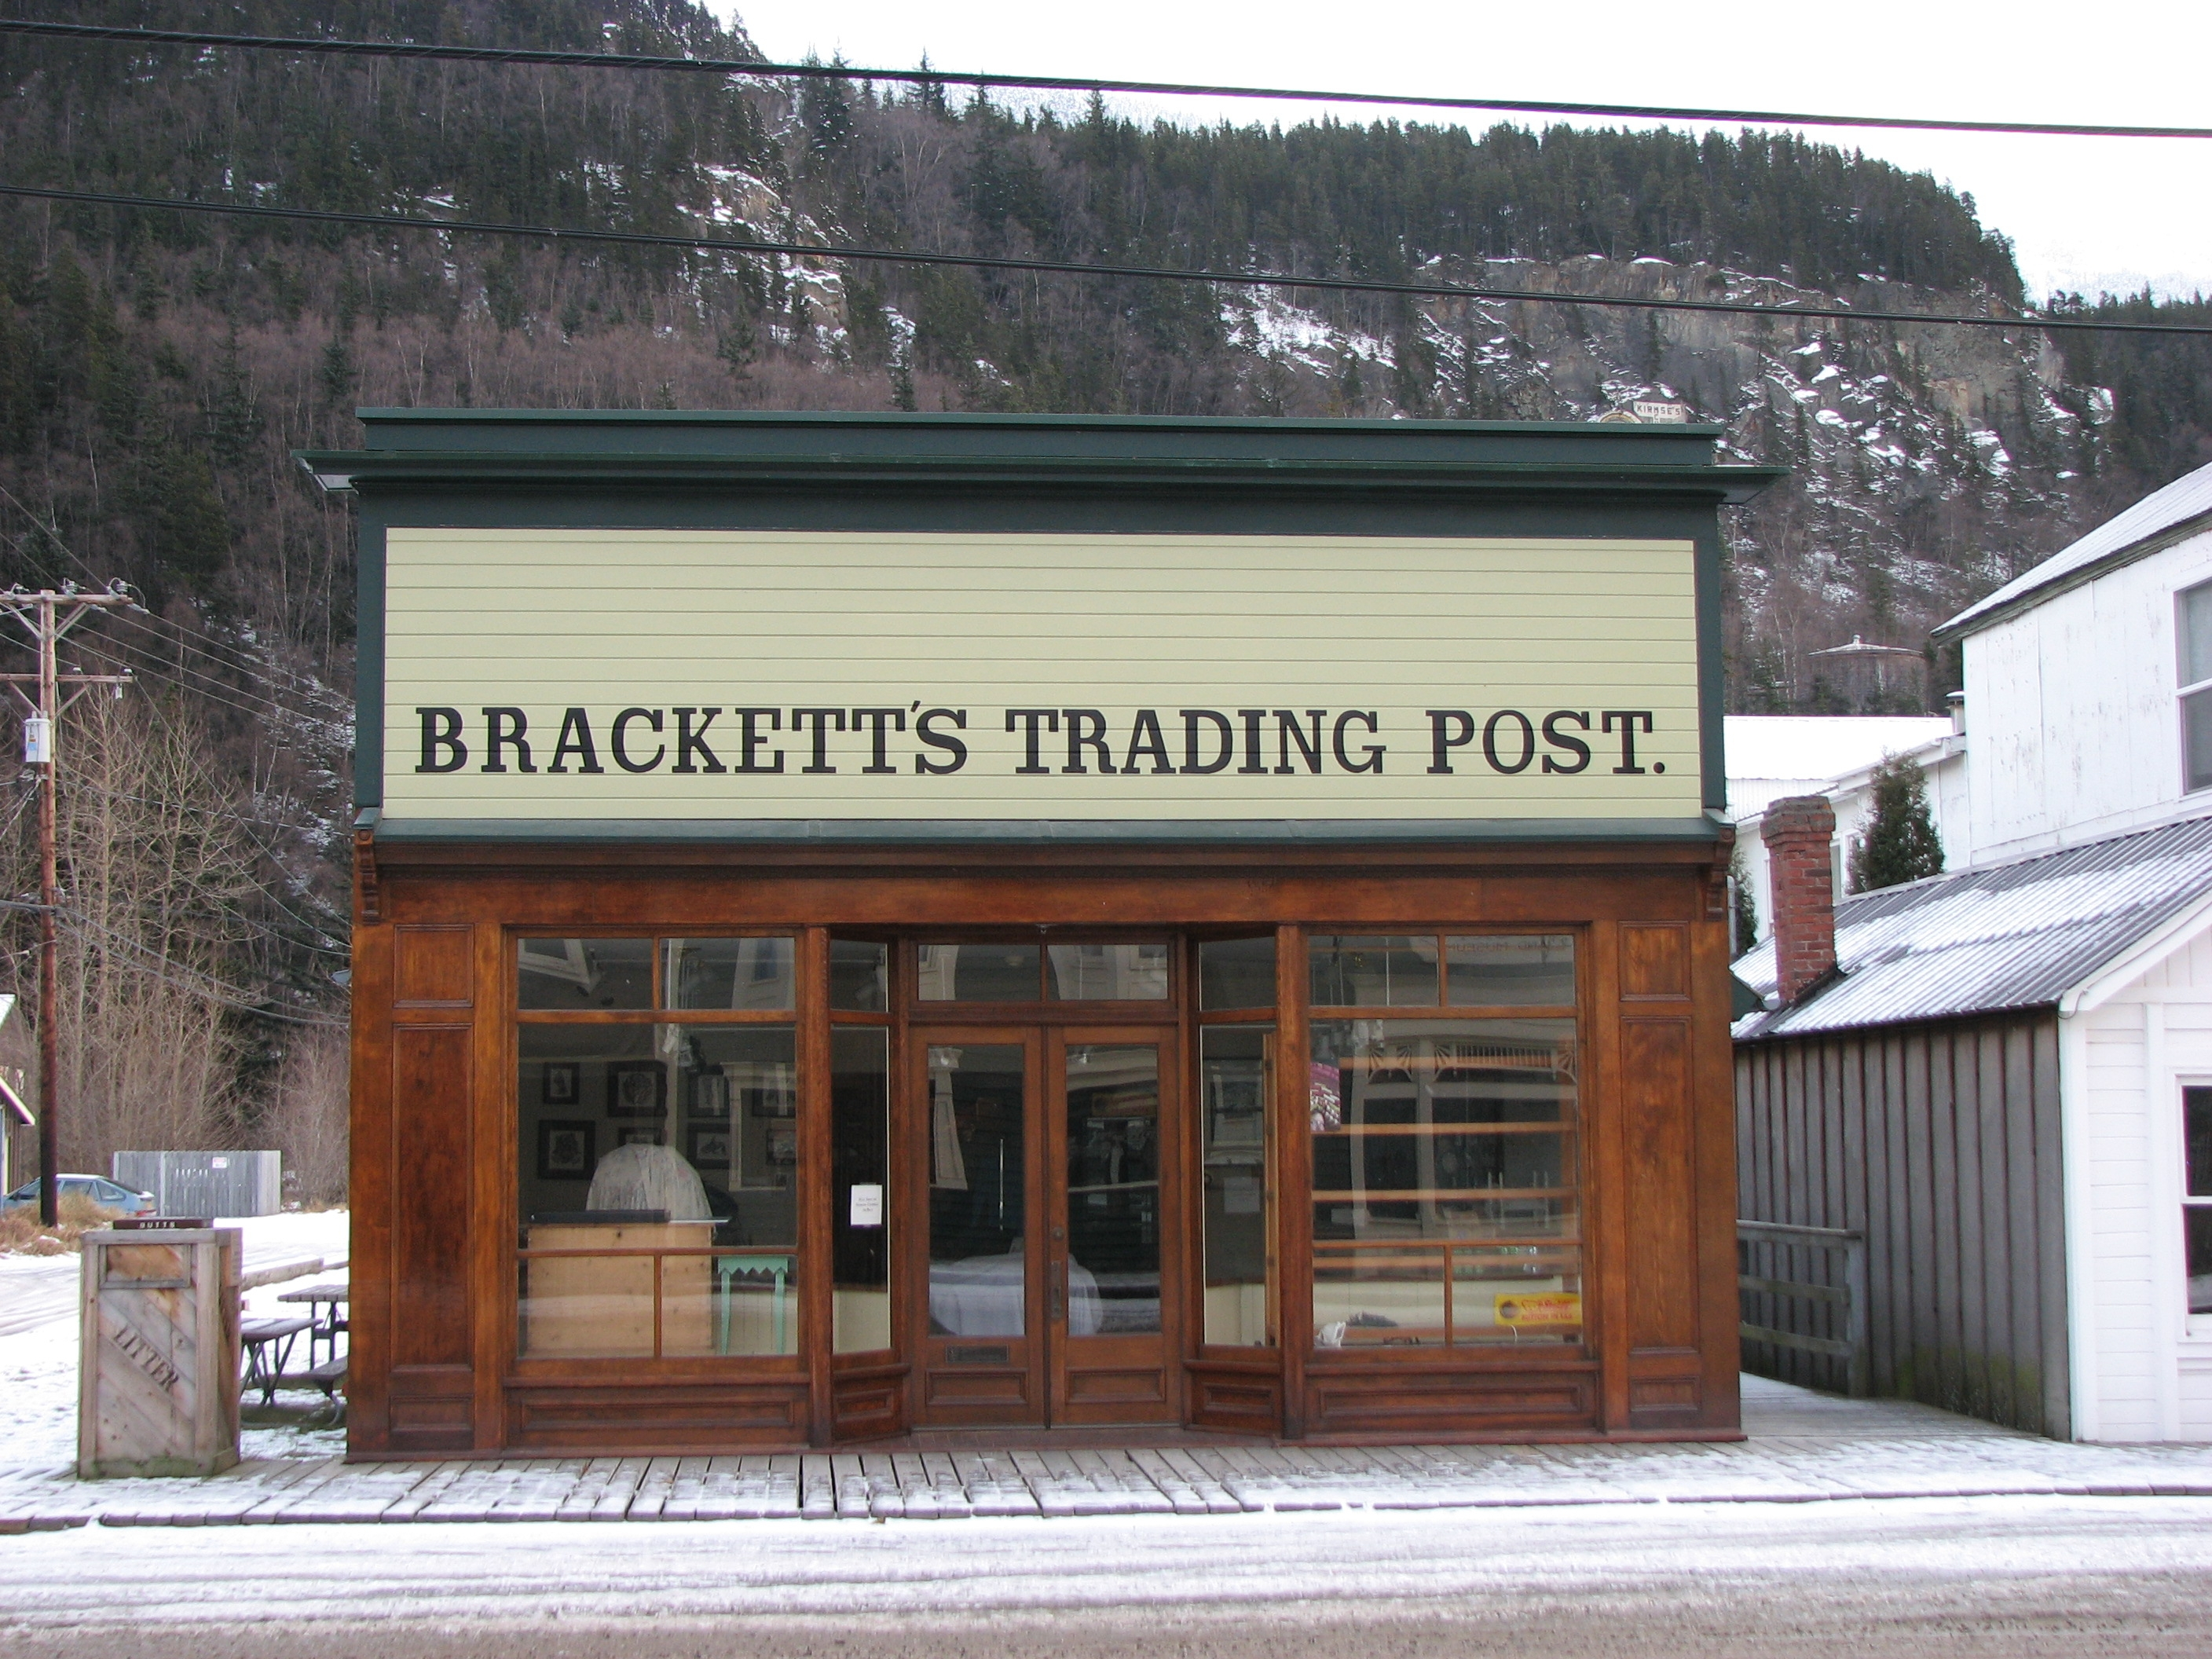 wood one story building with large painted sign covering top front of entire structure. Sign says Brackett Trading Post